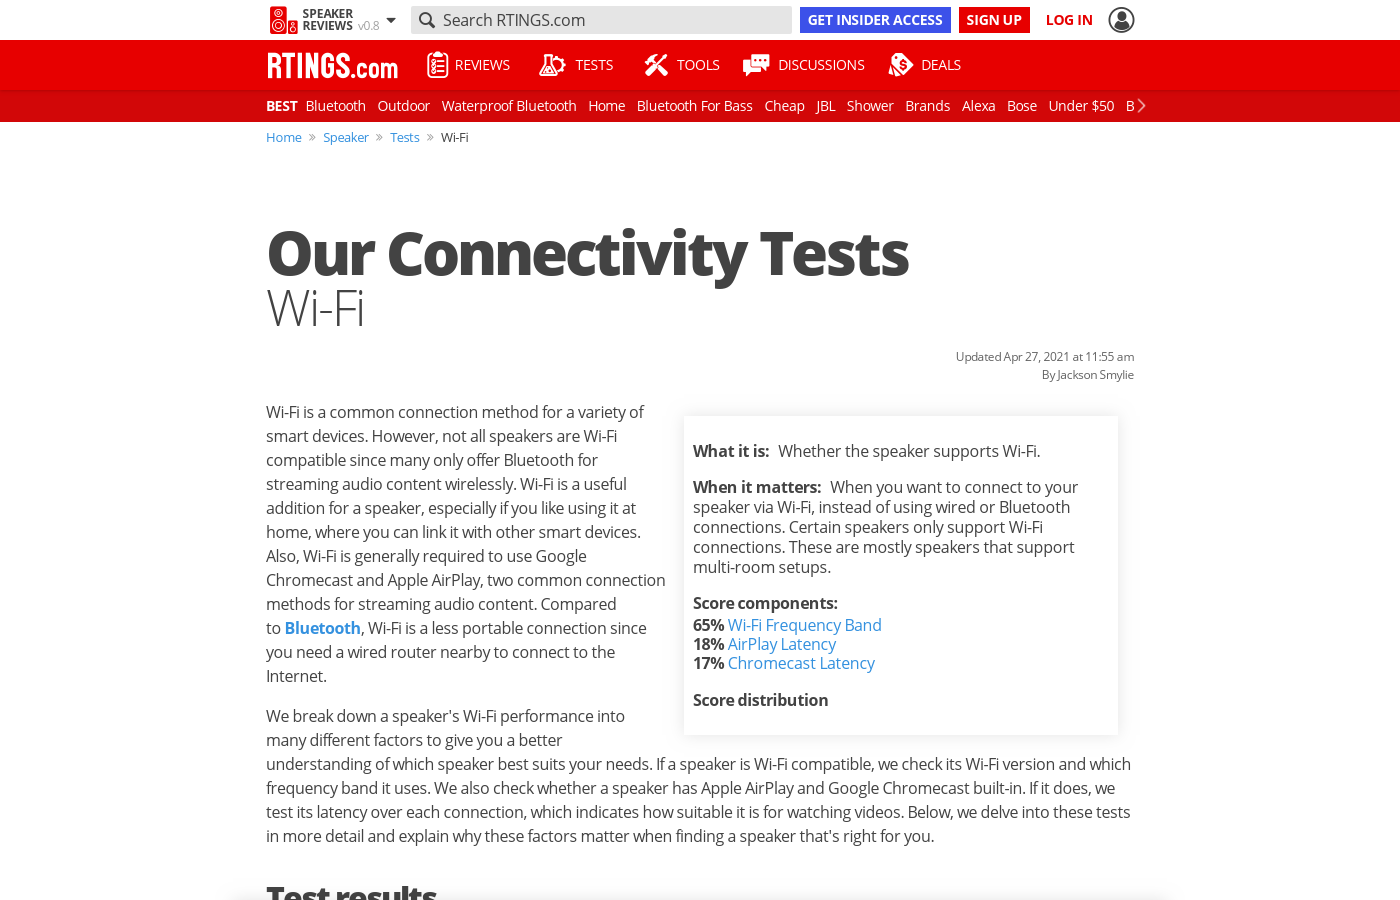 Our Connectivity Tests: Wi-Fi